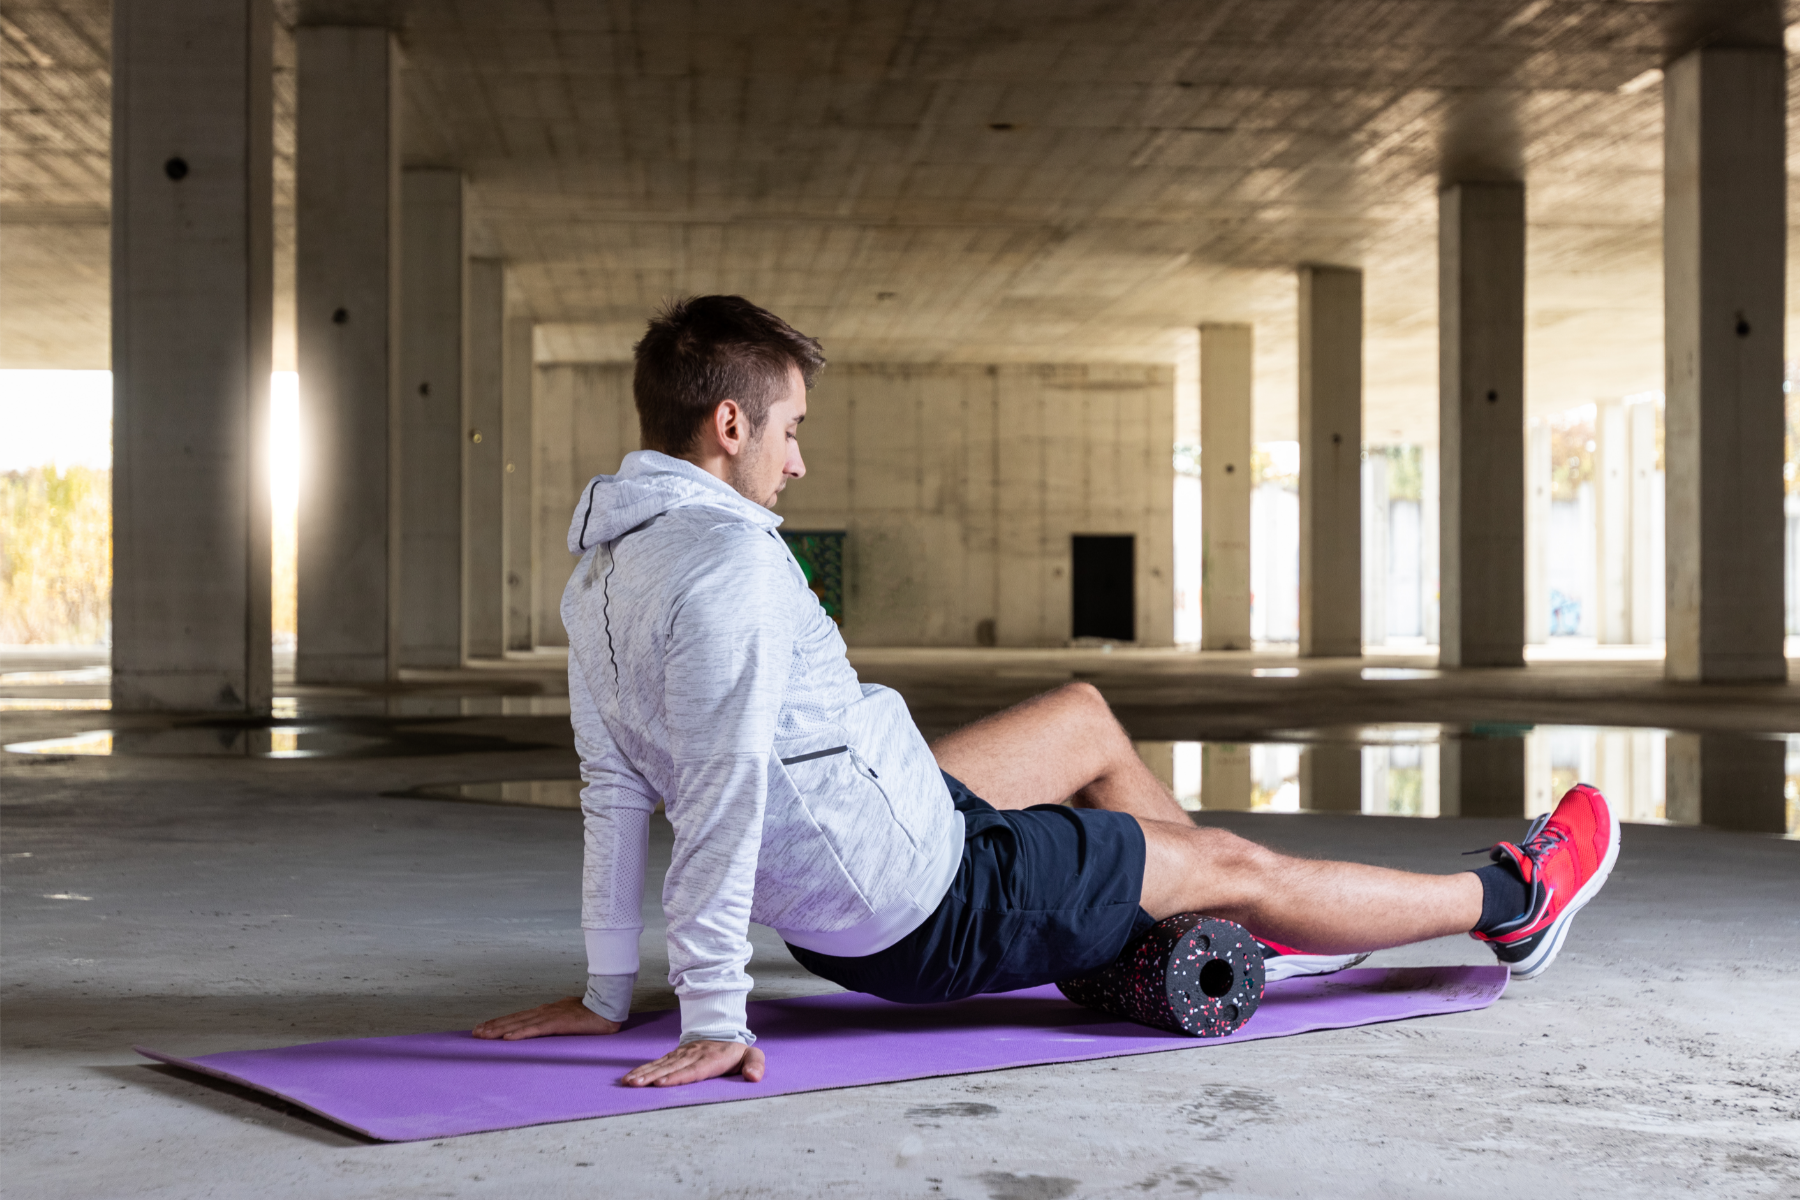 3 Reasons Foam Rolling Should Be in Your Daily Routine